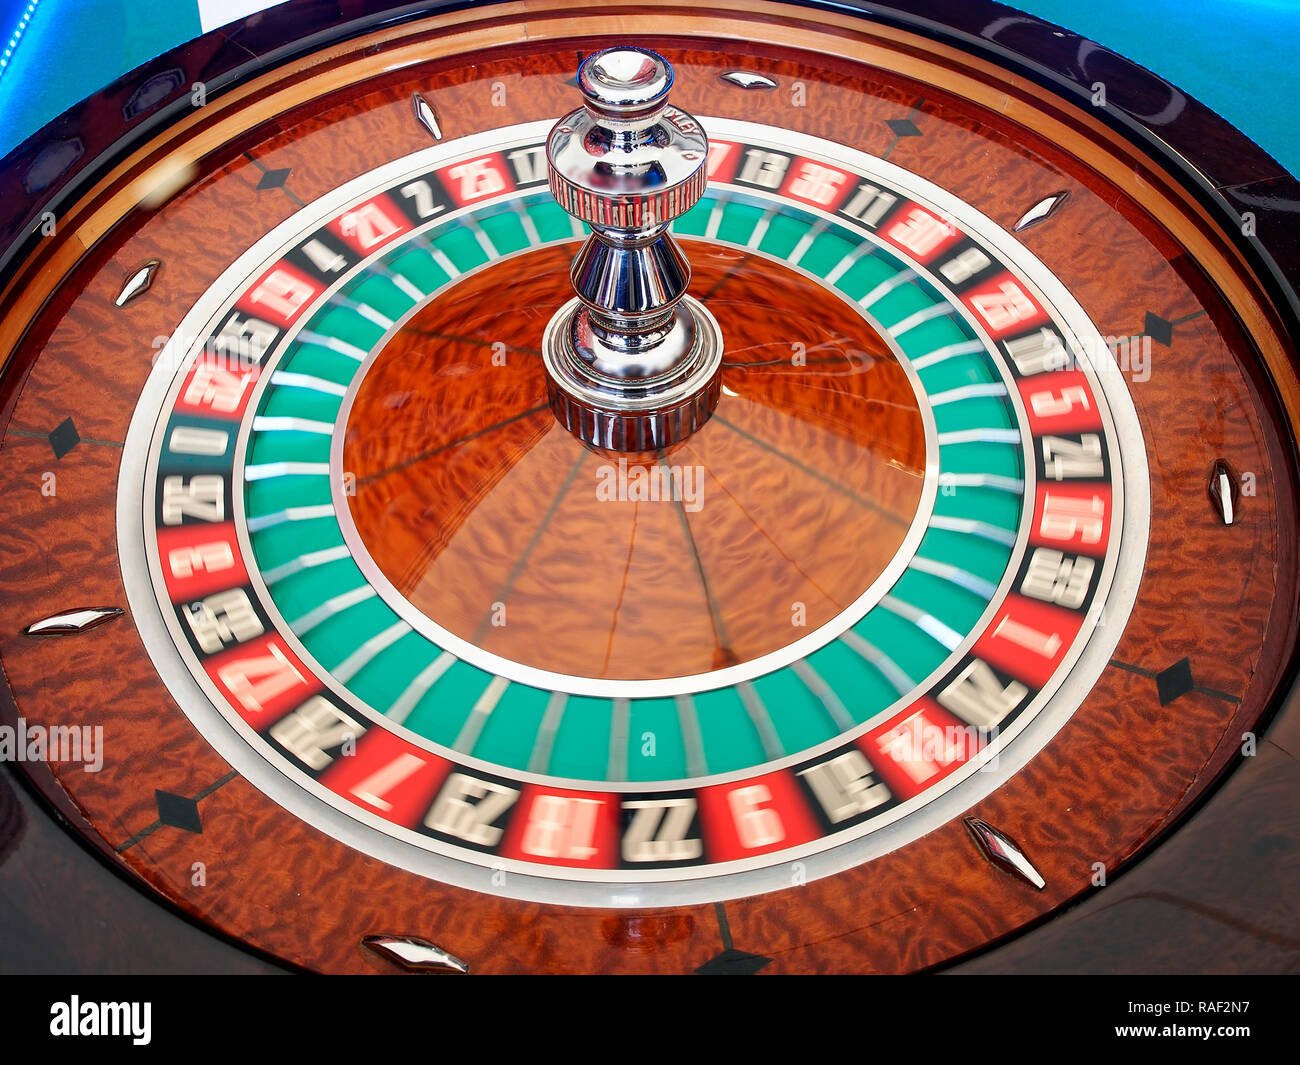 Roulette spinning wheel in action - Stock Image